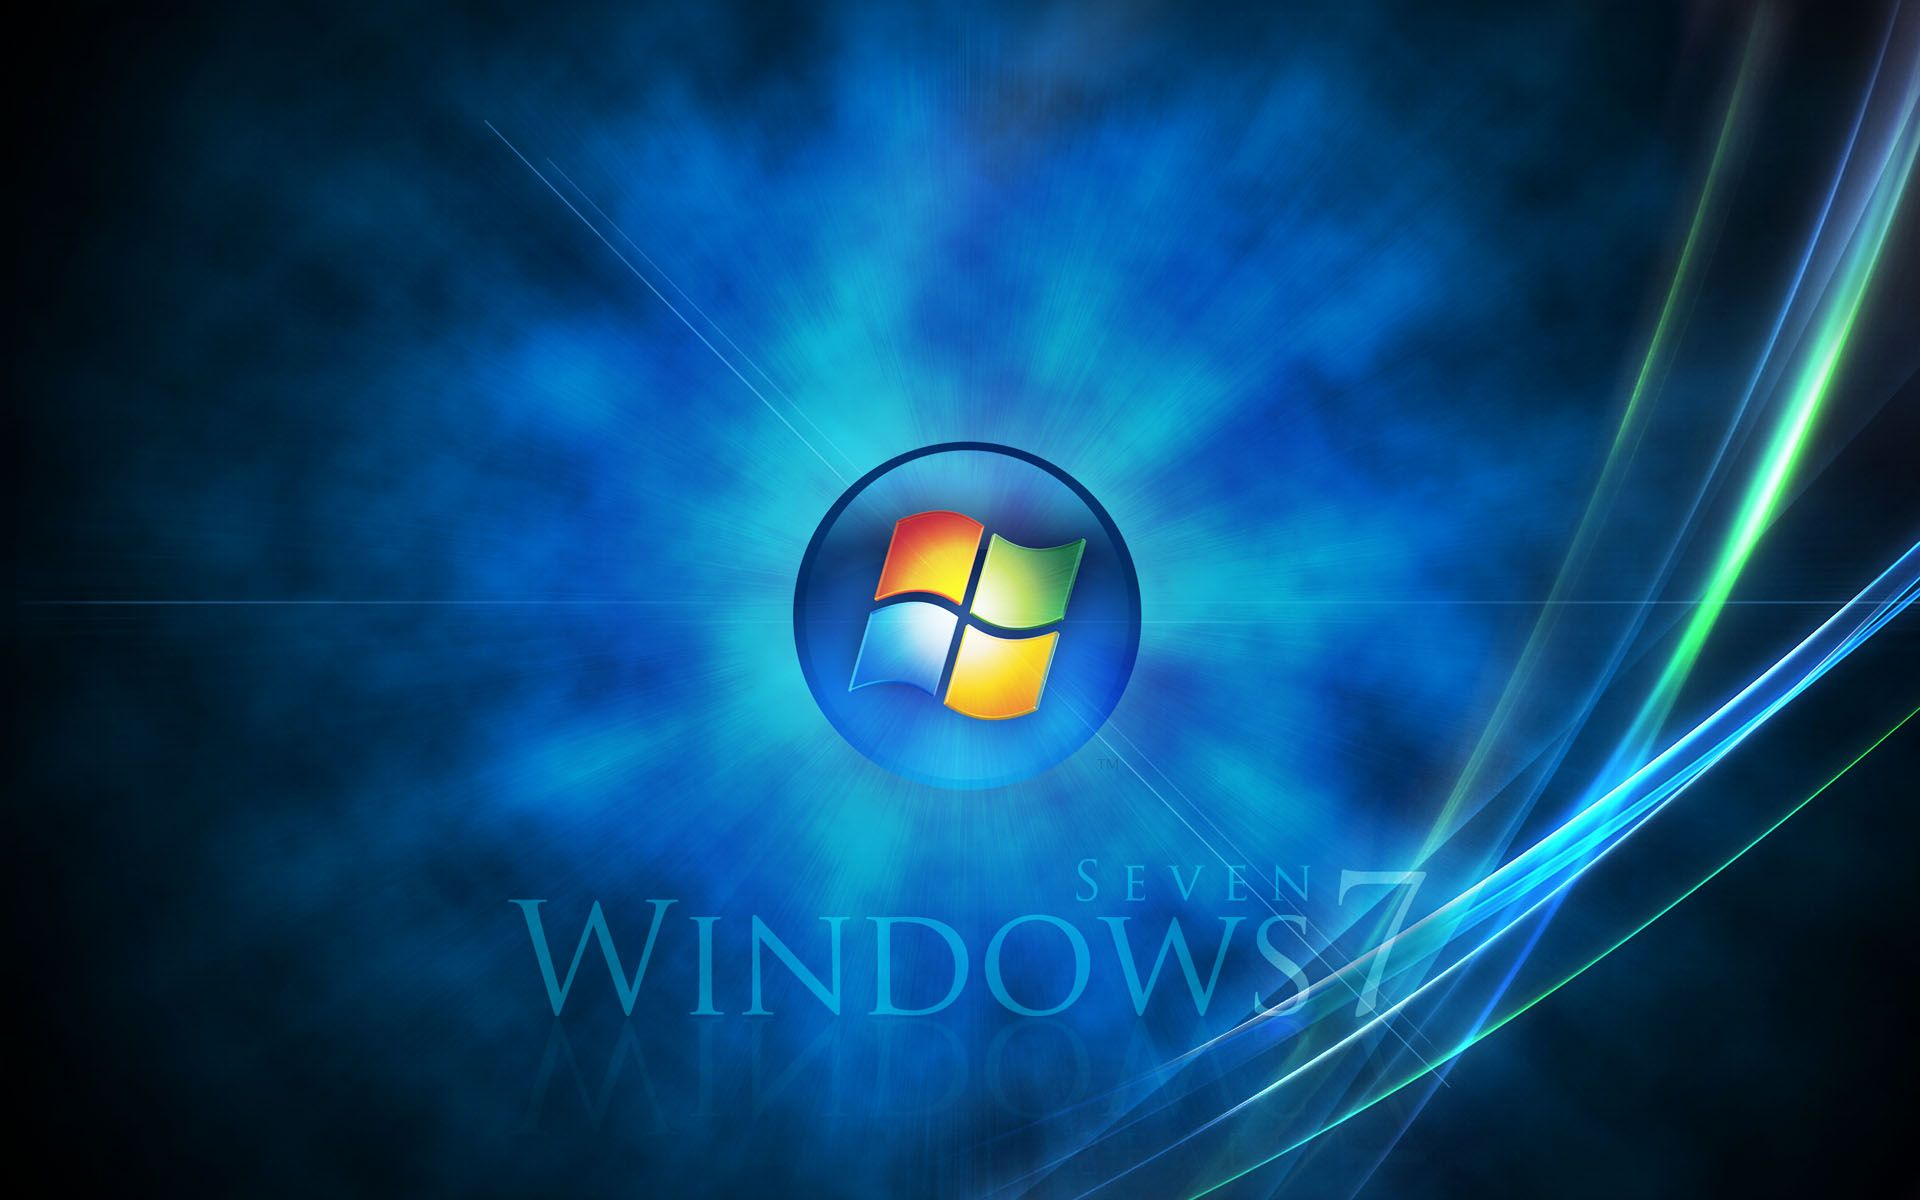 windows 7 wallpapers slideshow 40 wallpapers